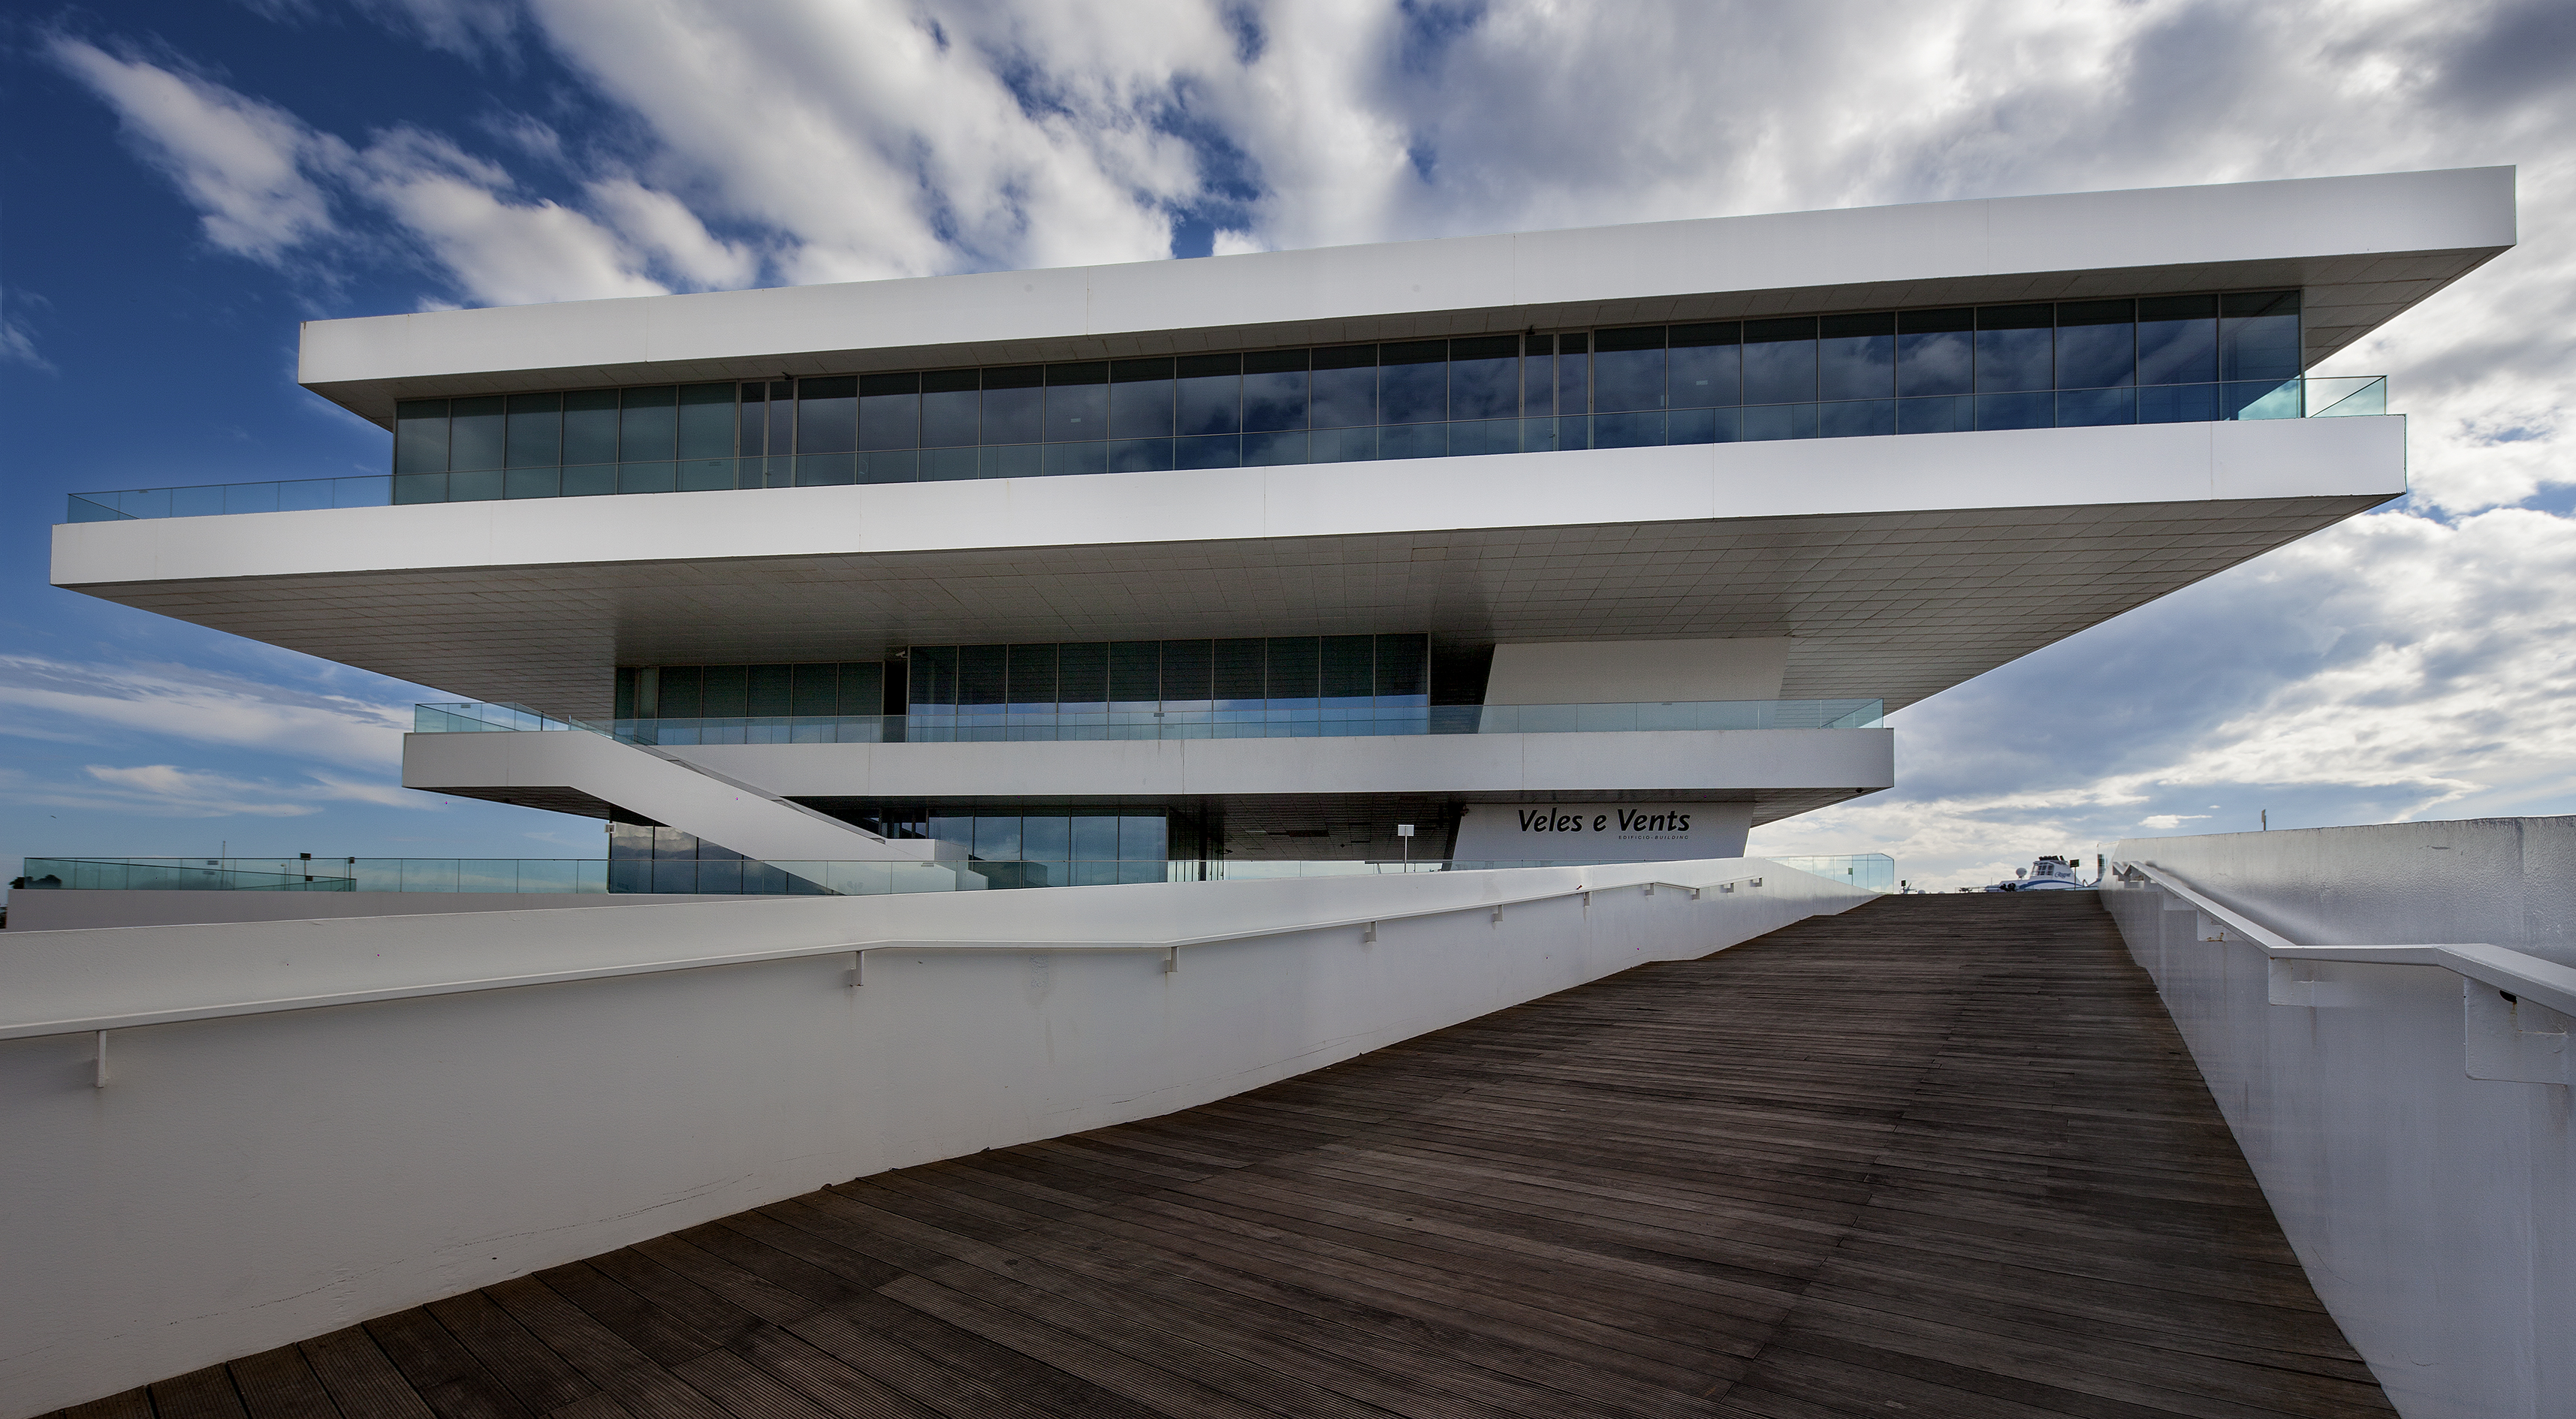 Veles e Vents is a building built for the American Cup yacht race in Valencia by architect David Chipperfield